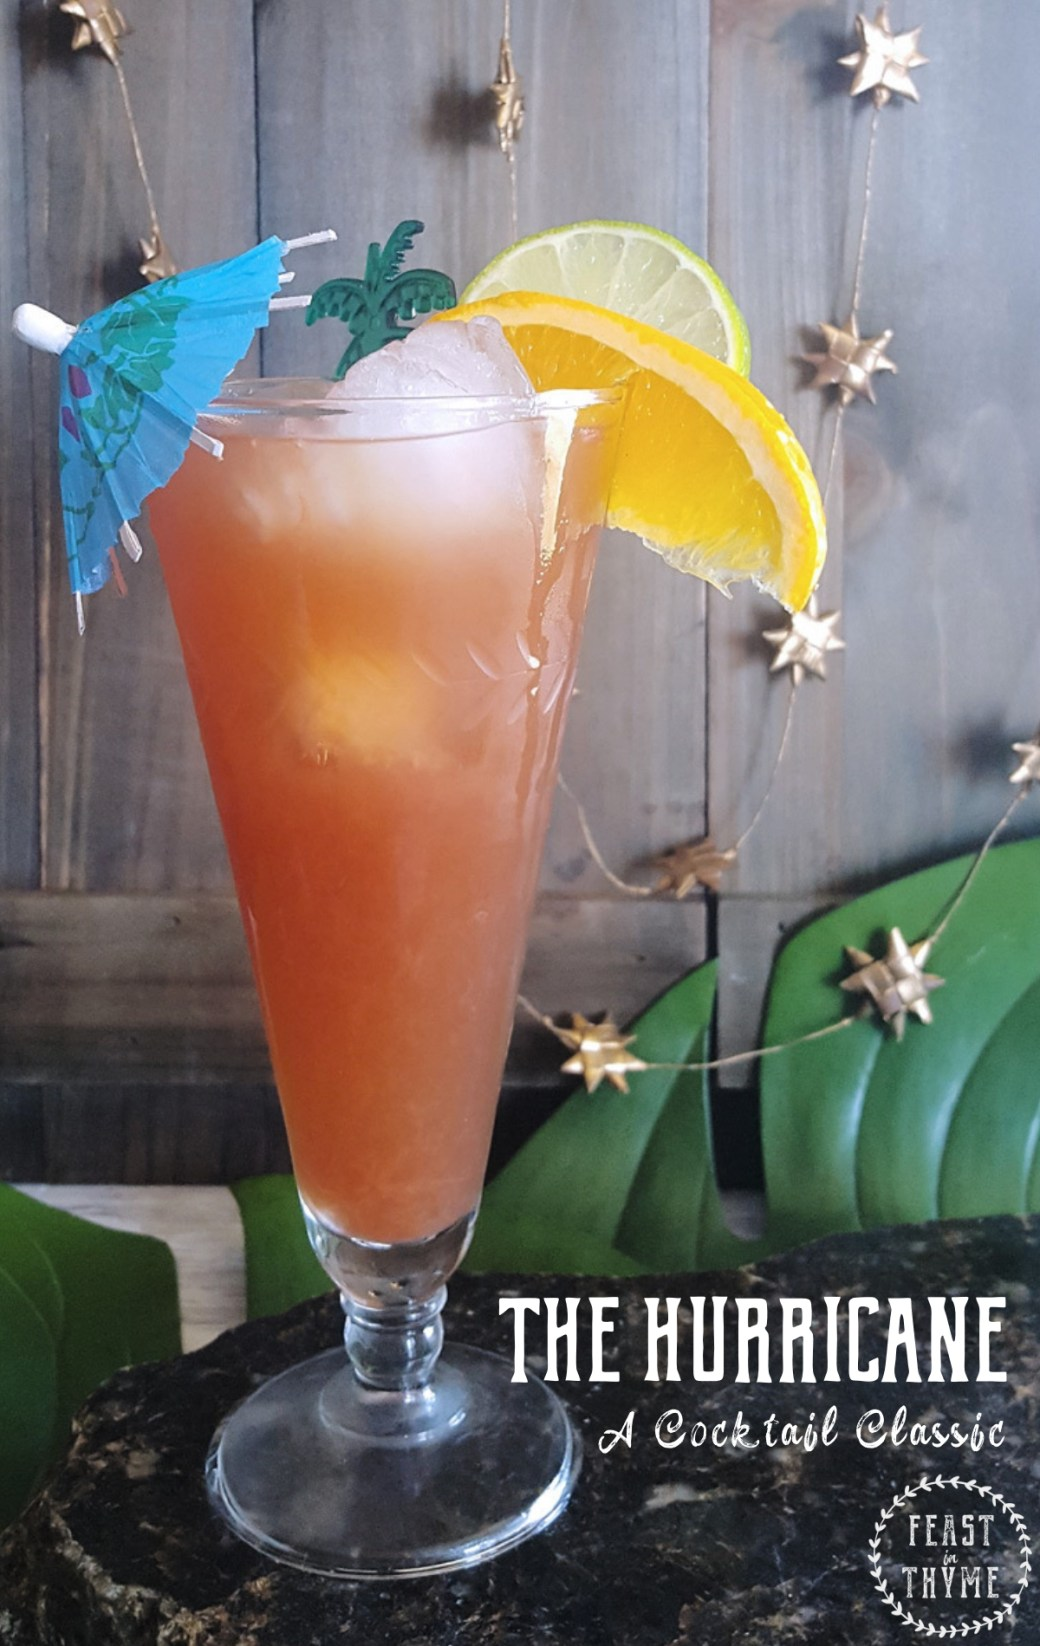 Rediscover a classic New Orleans cocktail with this delicious homemade Hurricane full of real fruit juices, Jamaican rum, and terrific tropical flavor.